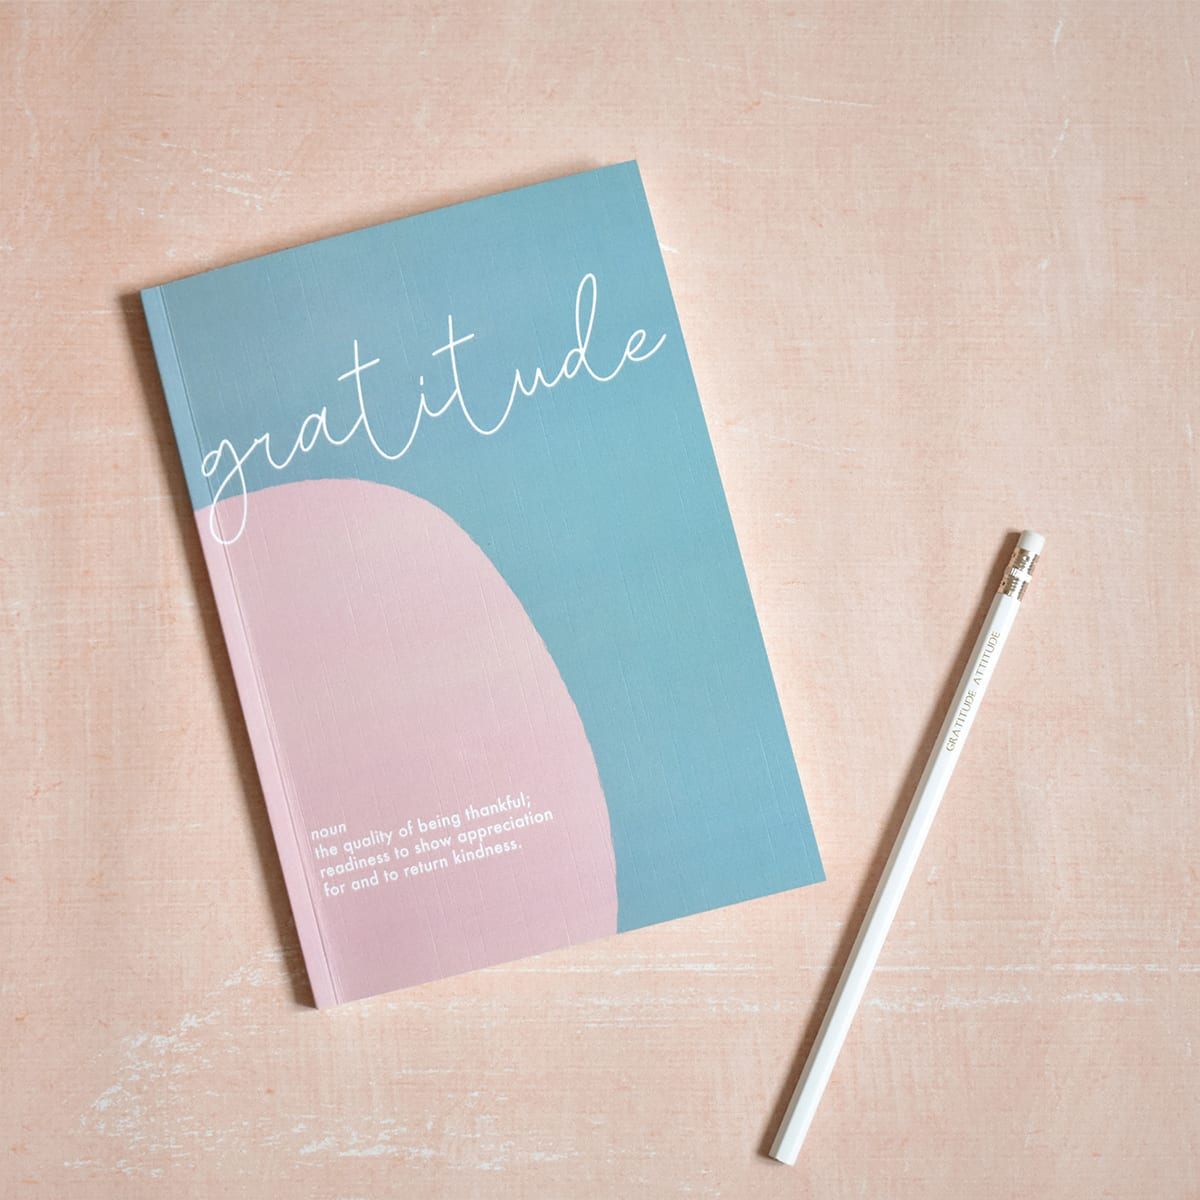 Gratitude Journal, 100 x 100gsm FSC-certified pages, 270gsm textured cover, size A5, record three things you are grateful for each day, space for you to write